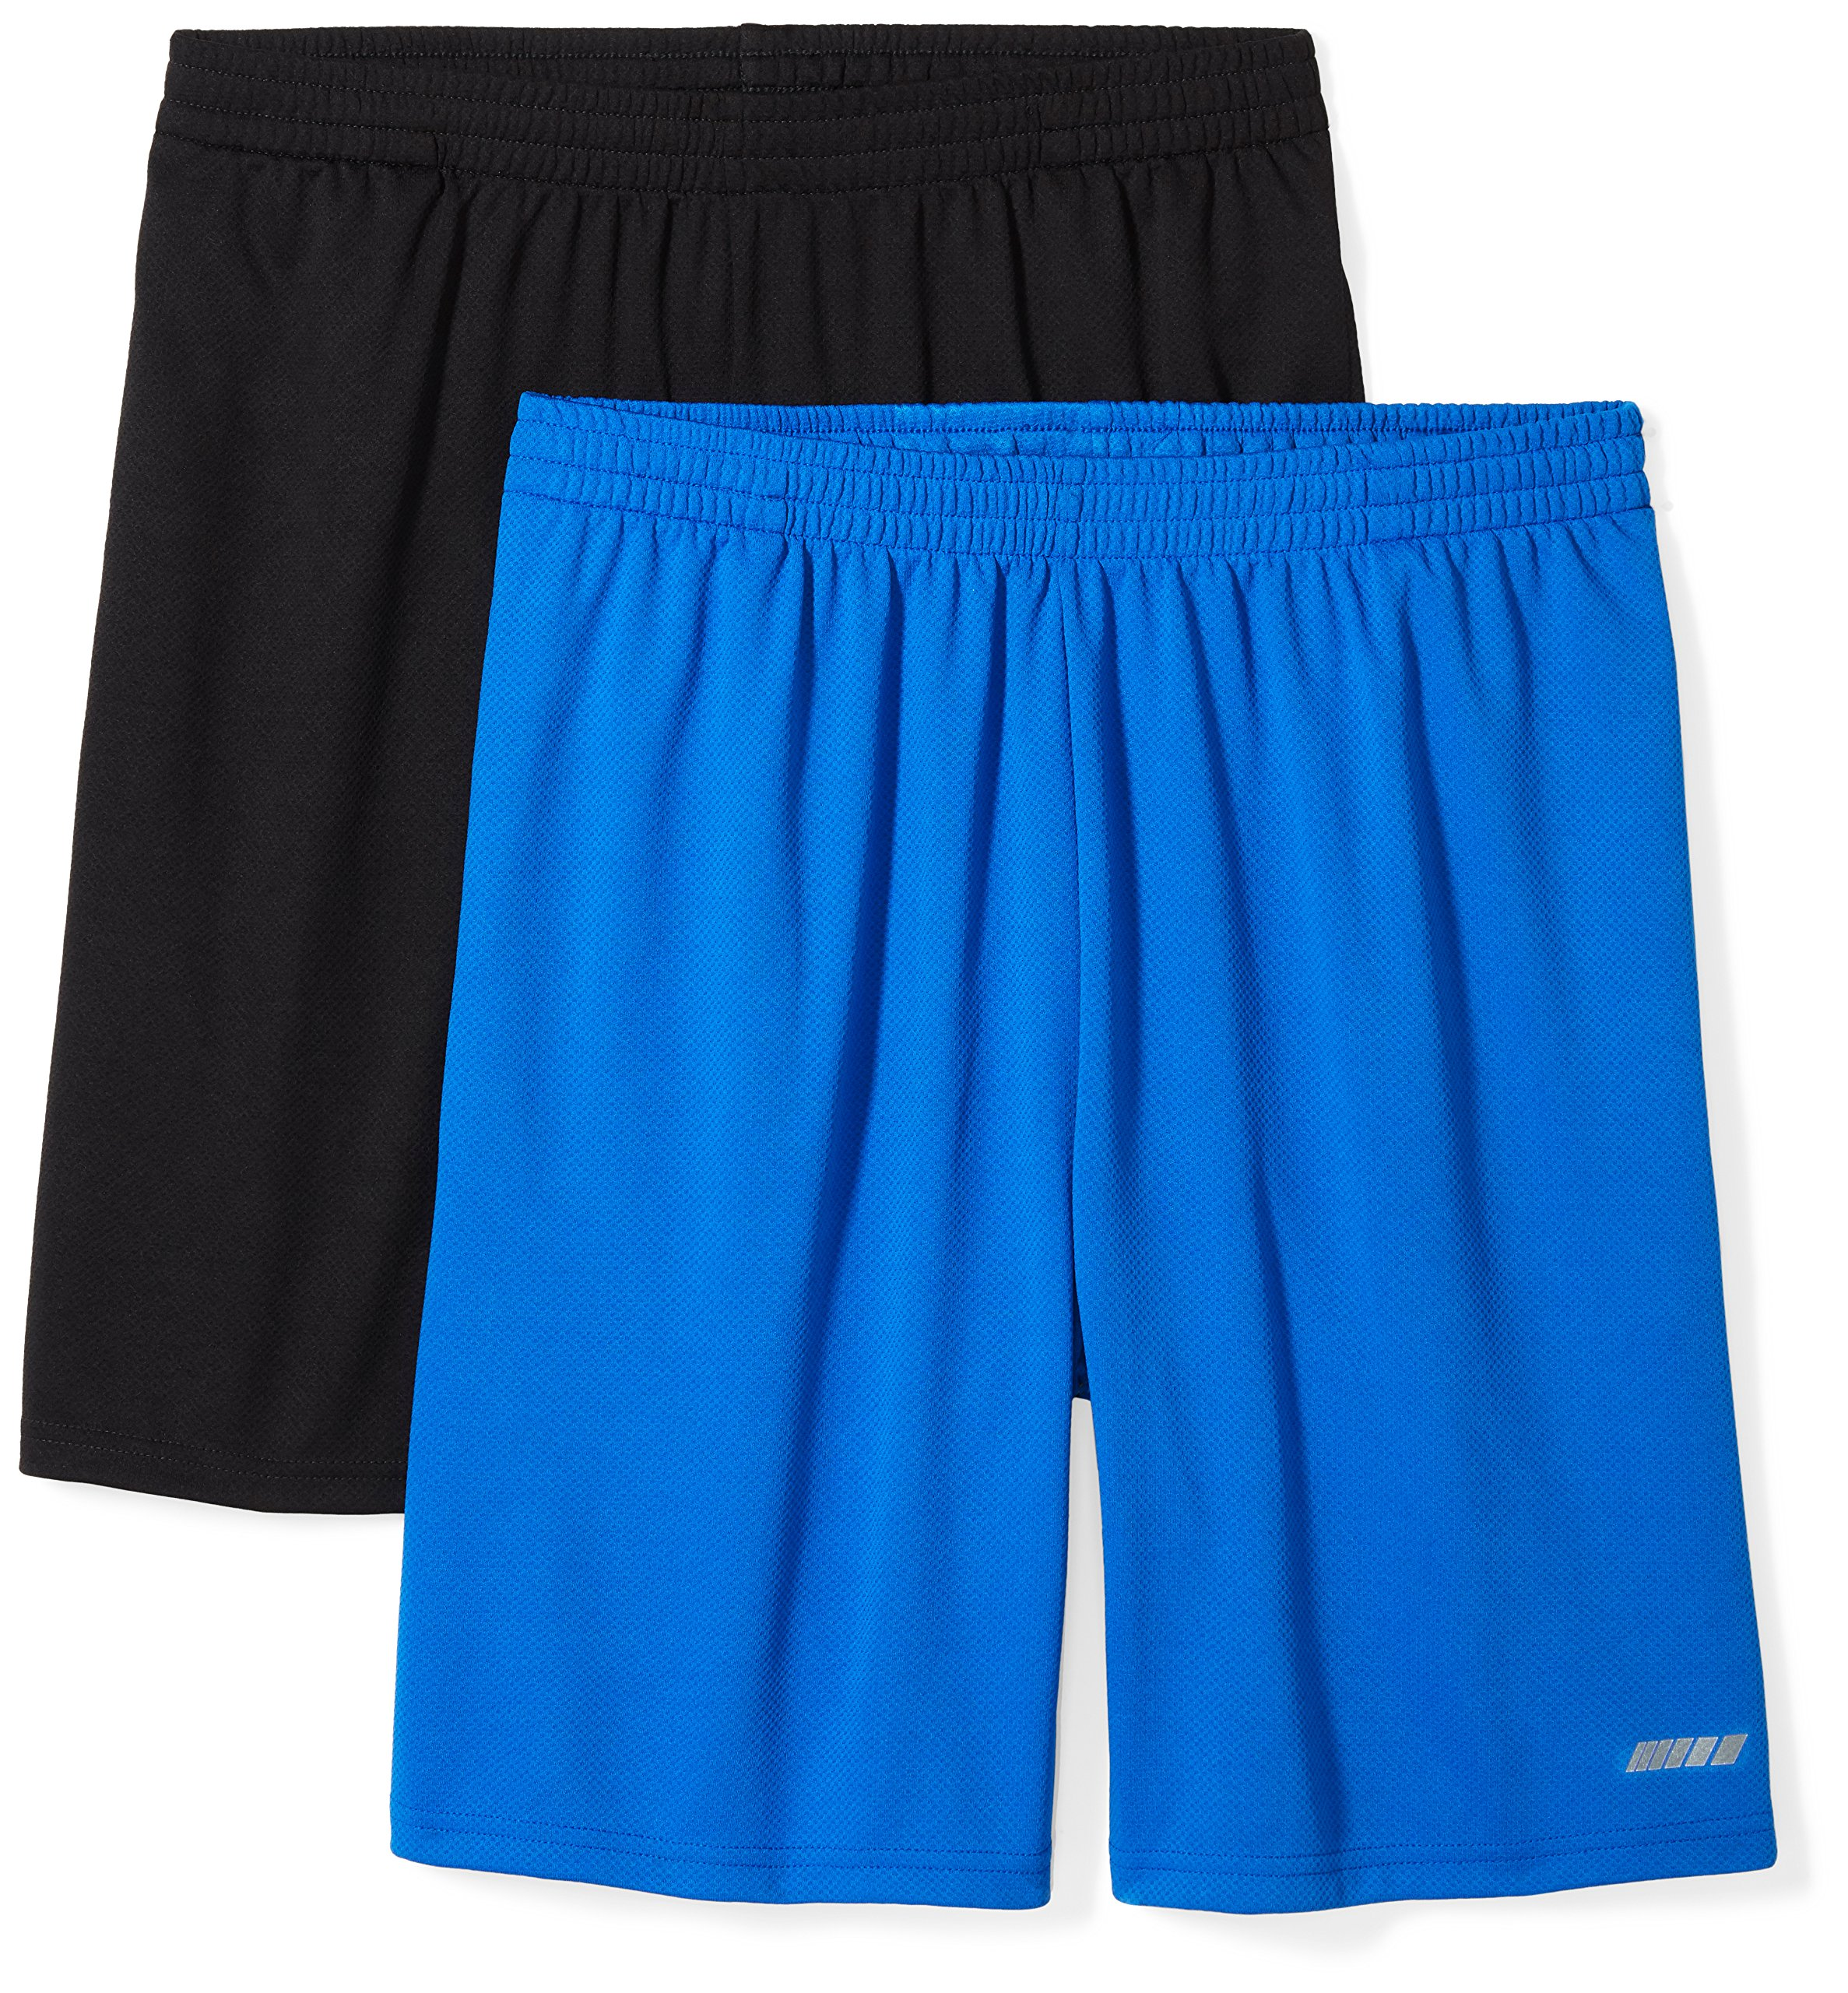 Amazon Essentials Men's 2-Pack Loose-Fit Performance Shorts, Black/Royal Blue, X-Large